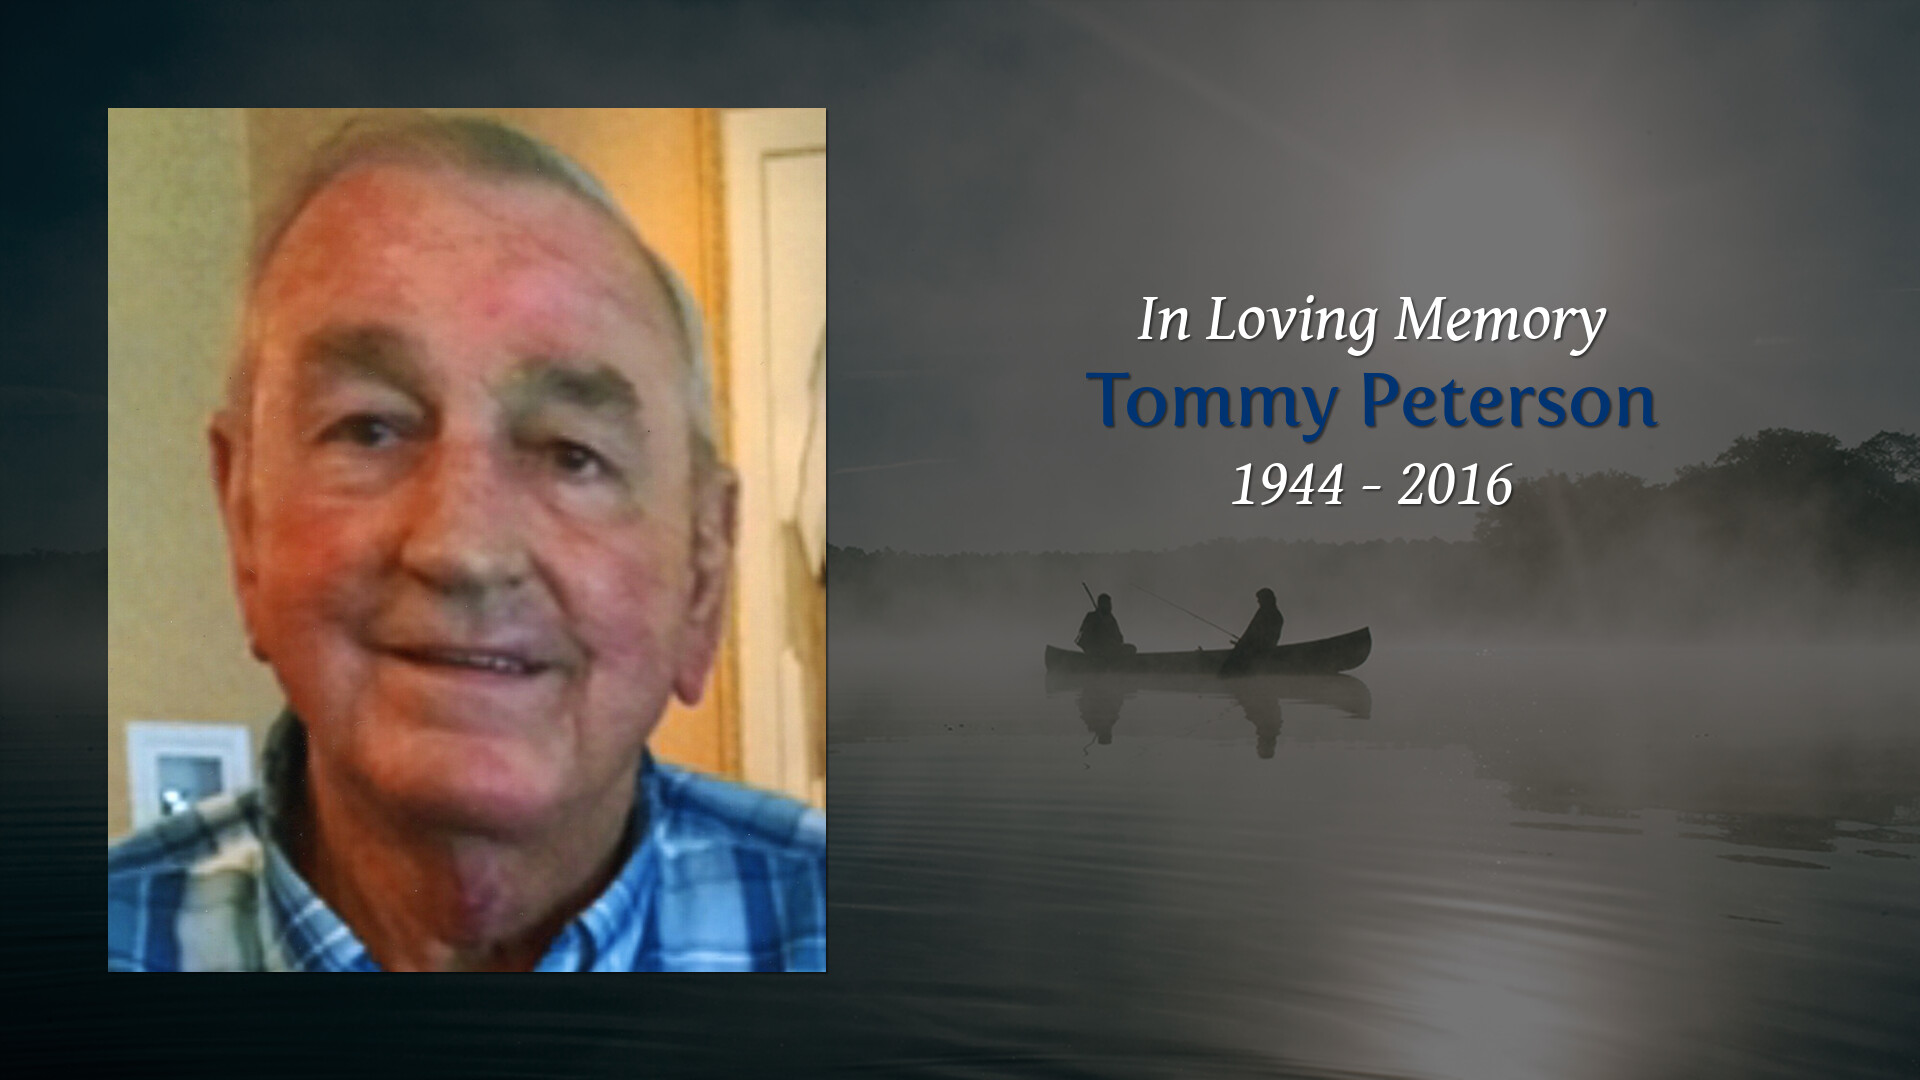 Obituary for Tommy Peterson